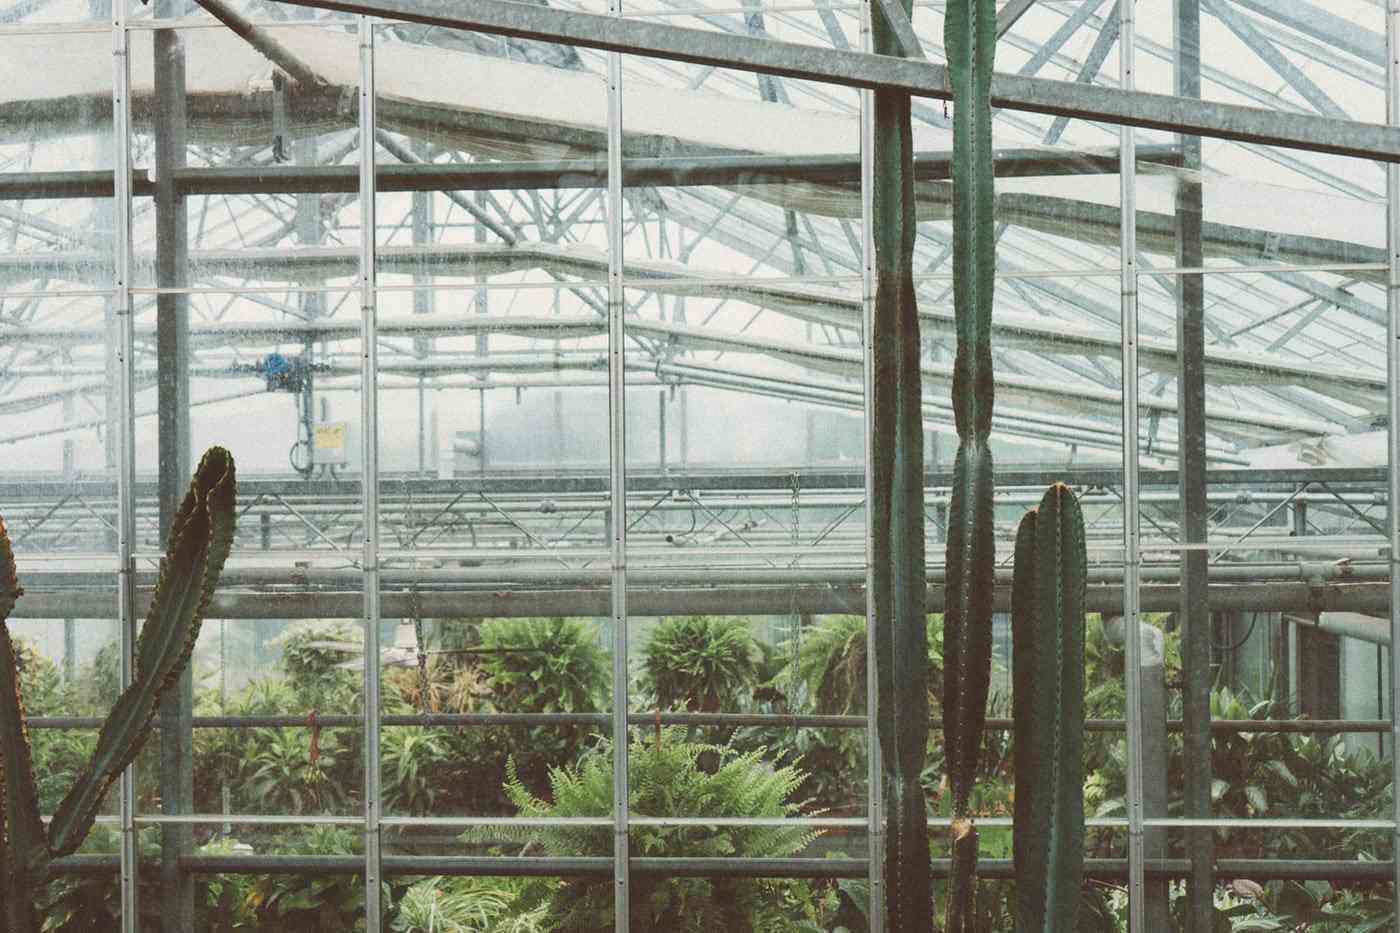 cactus in greenhouse - types of greenhouse glass